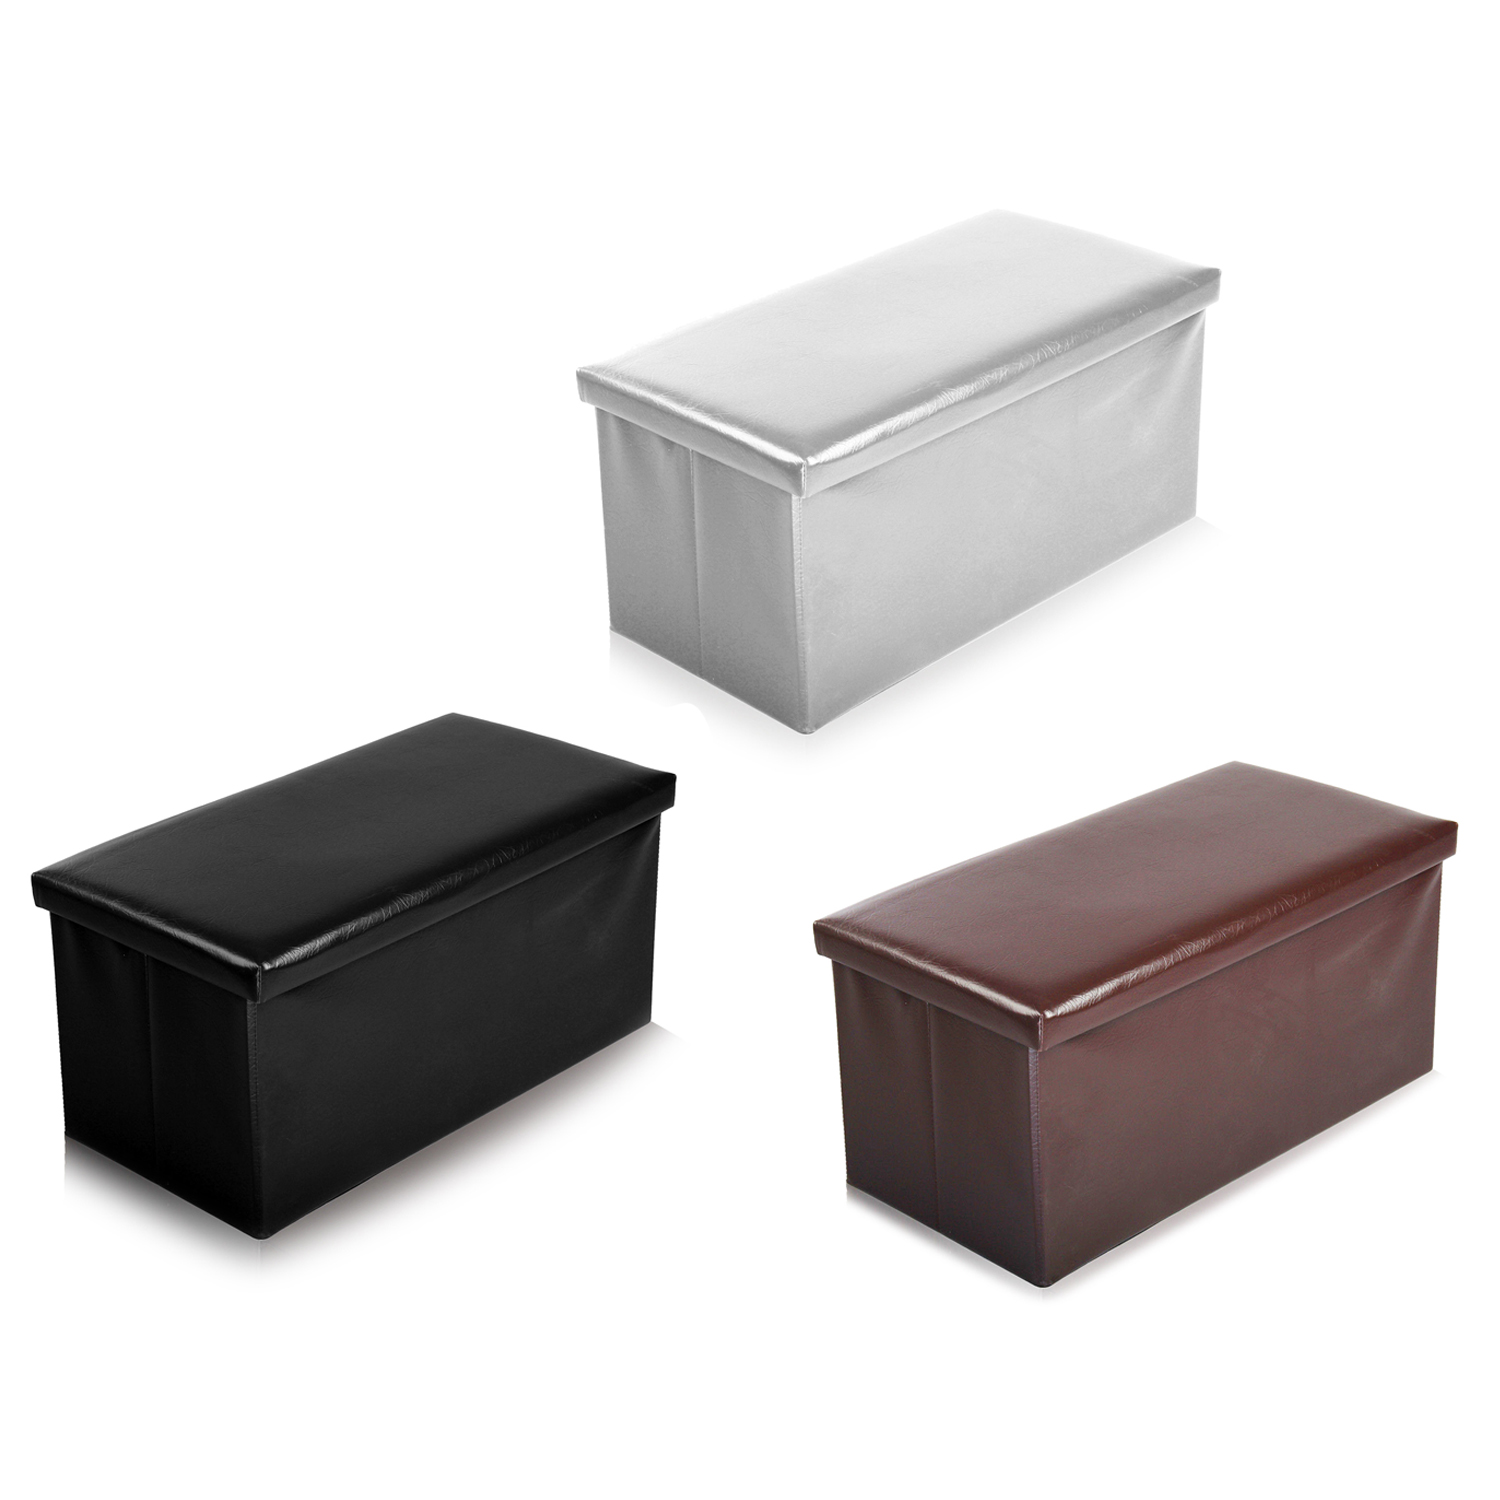 2 seater large faux leather seat stool folding storage box. Black Bedroom Furniture Sets. Home Design Ideas